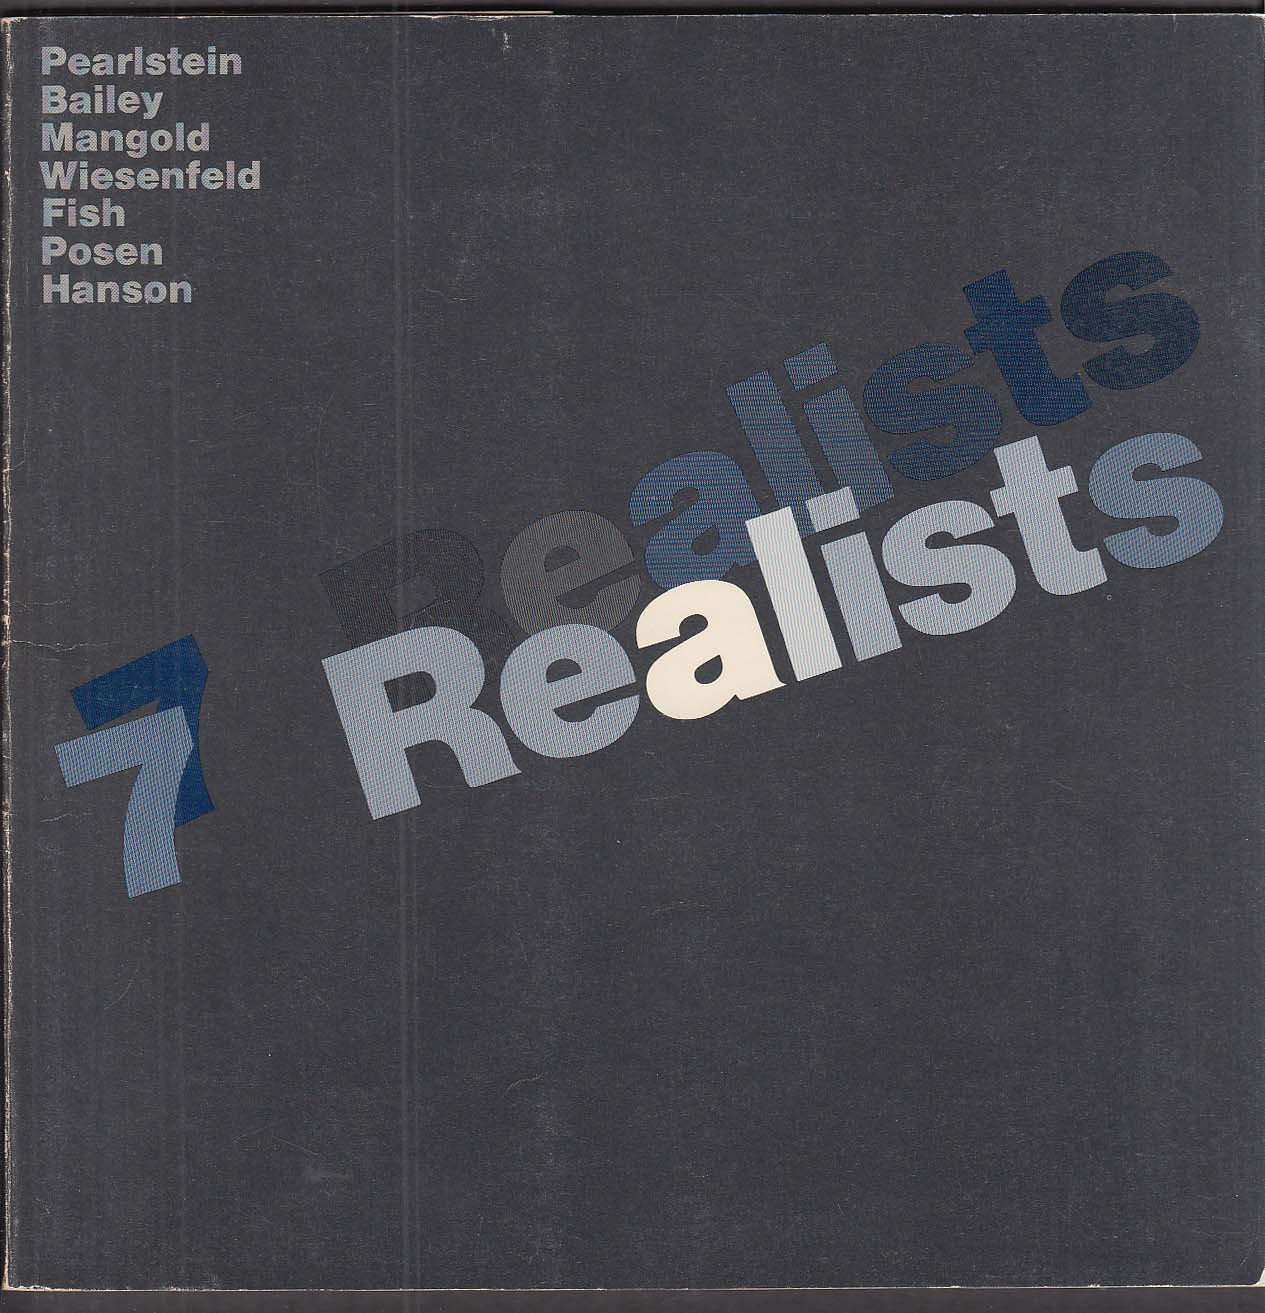 7 Realists exhibition catalog Yale Art Gallery New Haven CT 1974